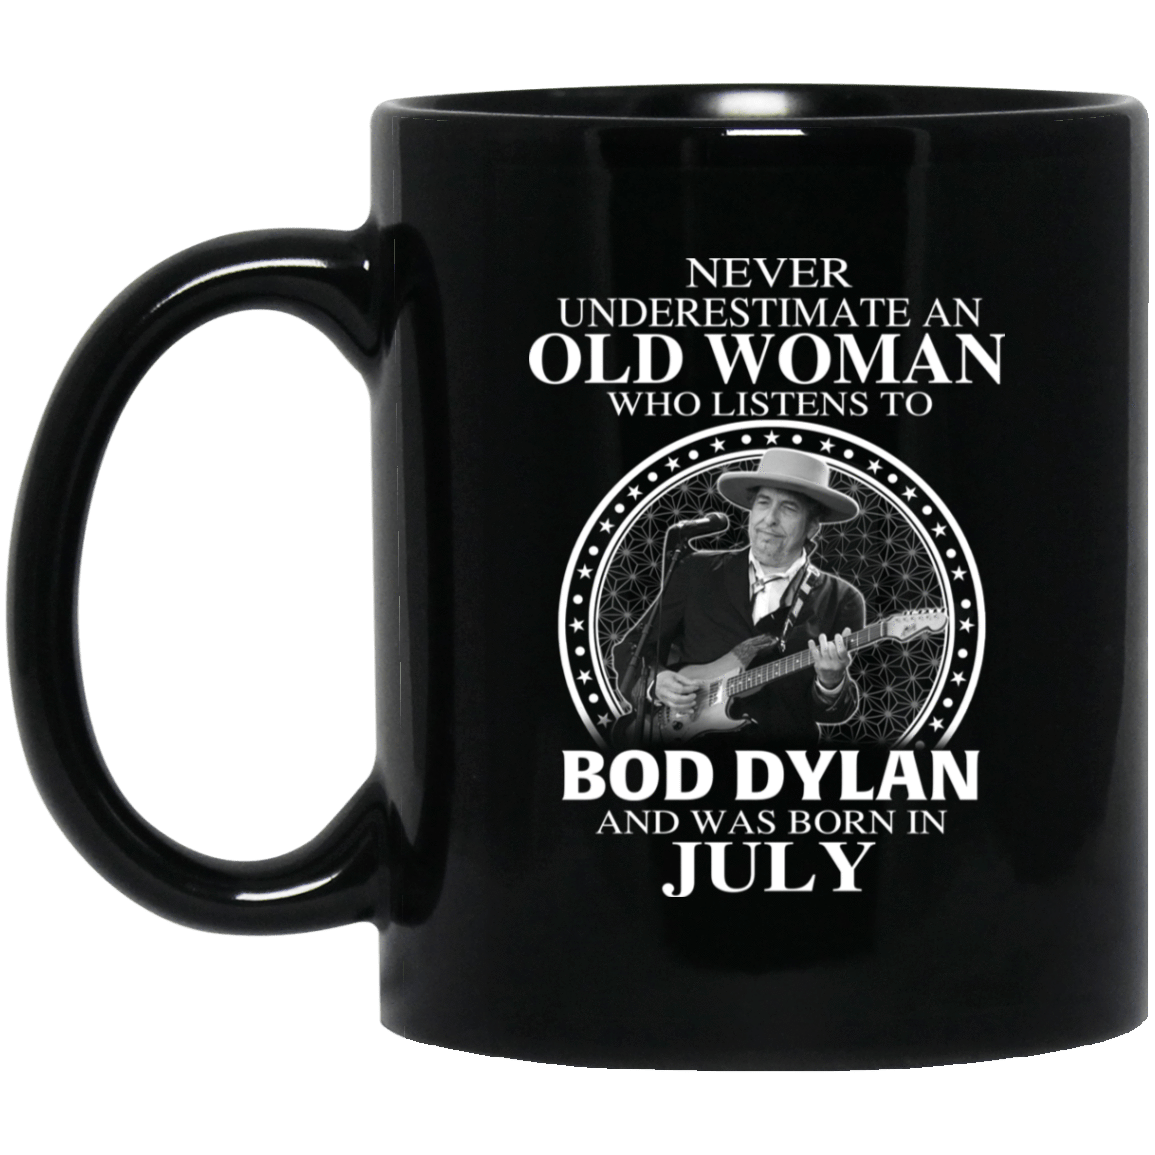 An Old Woman Who Listens To Bob Dylan And Was Born In July Mug 1065-10181-76154140-49307 - Tee Ript